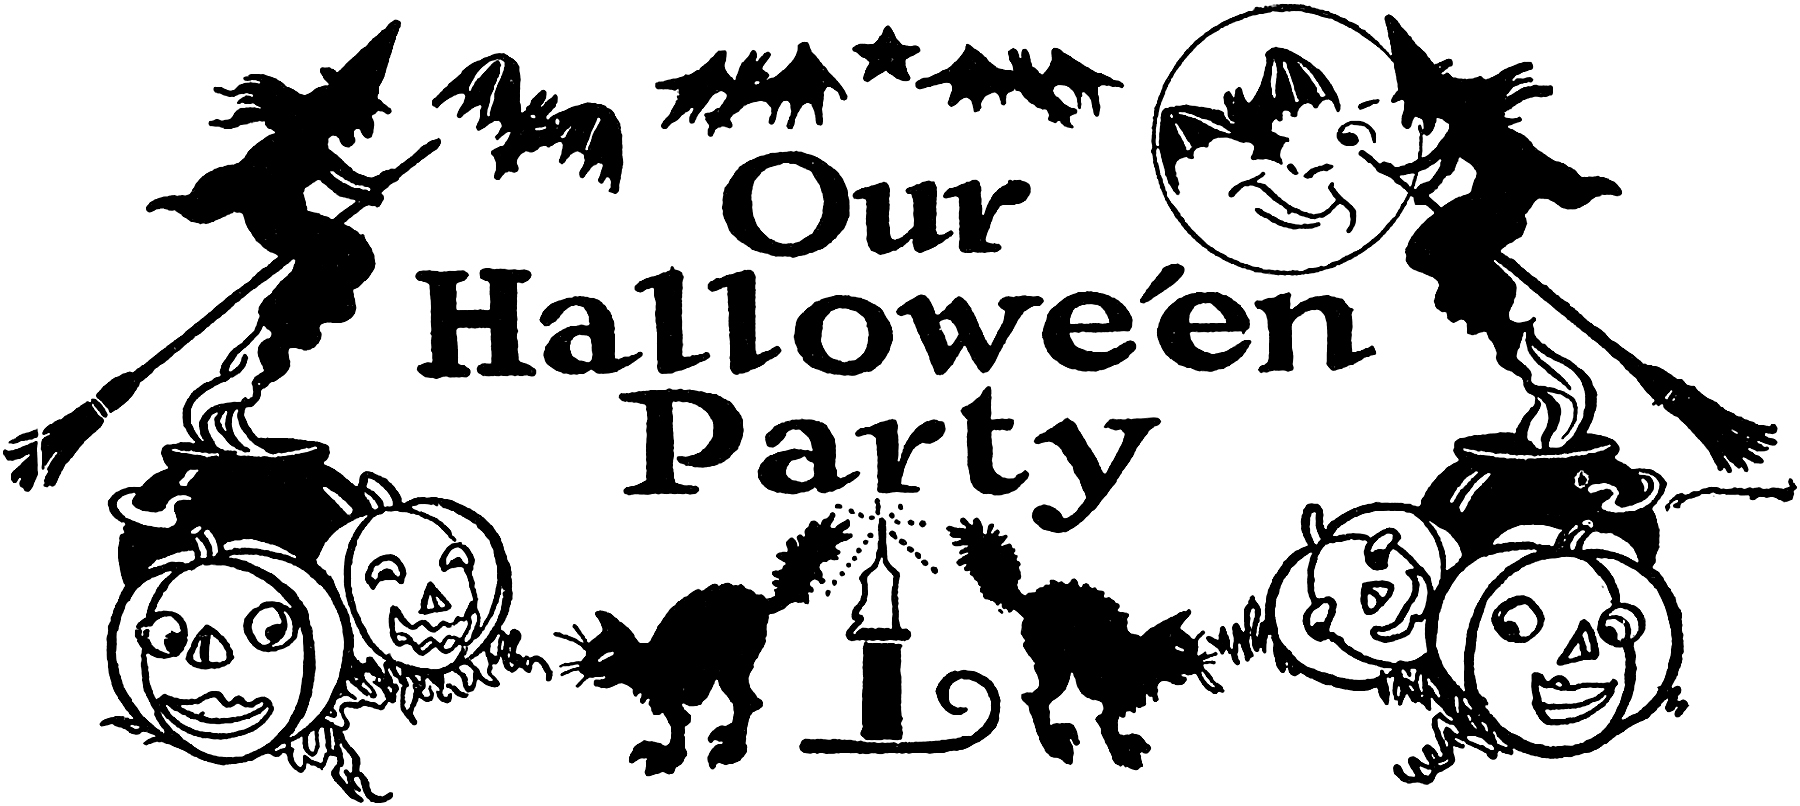 All Halloween Pictures Clip Art